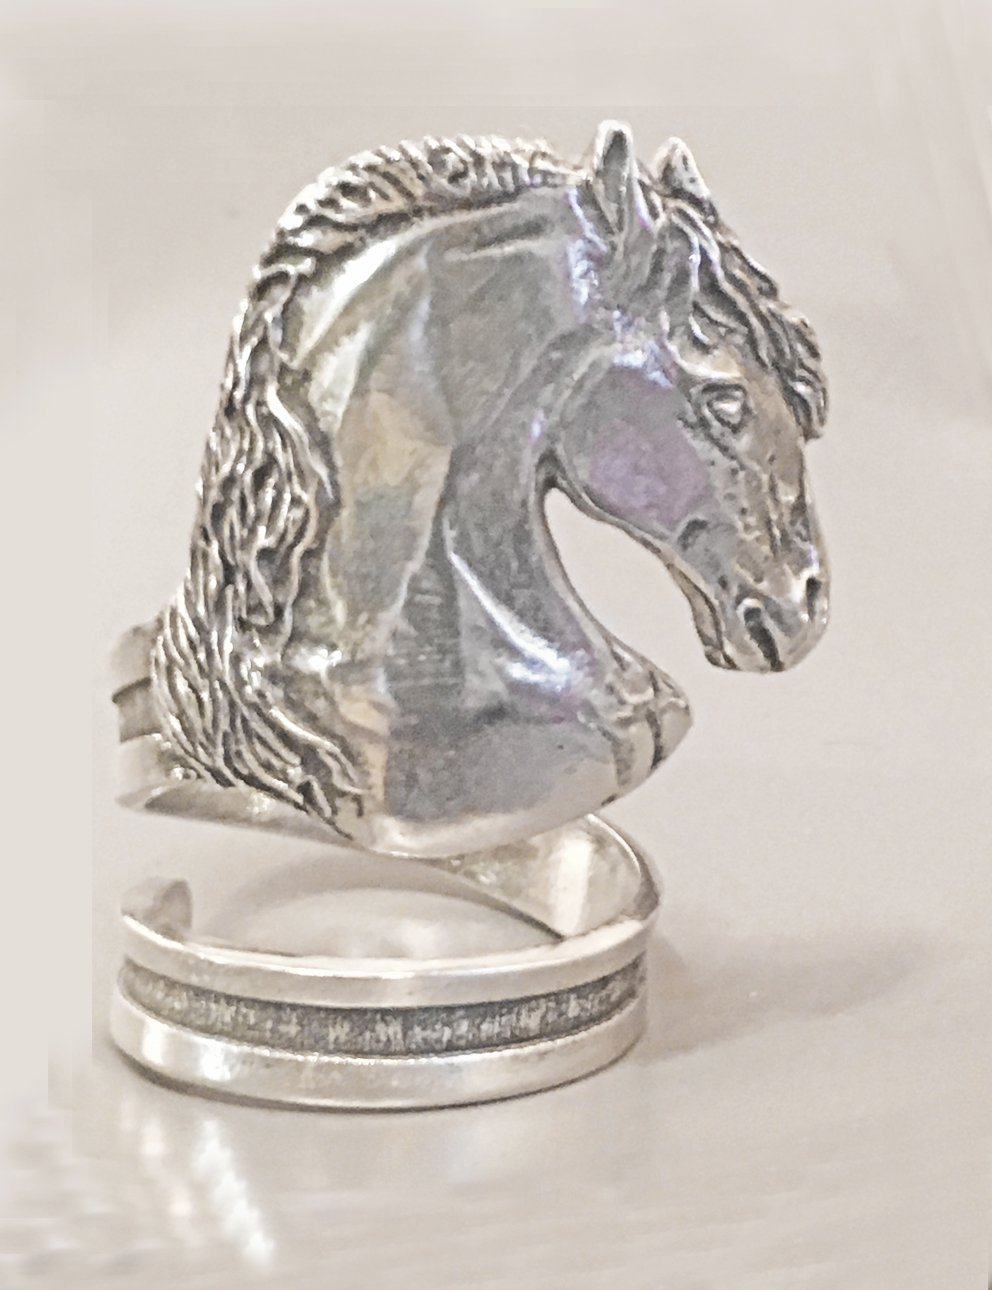 Horse Lady Gifts Stallion Horse Napkin Rings, set of 4 in pewter